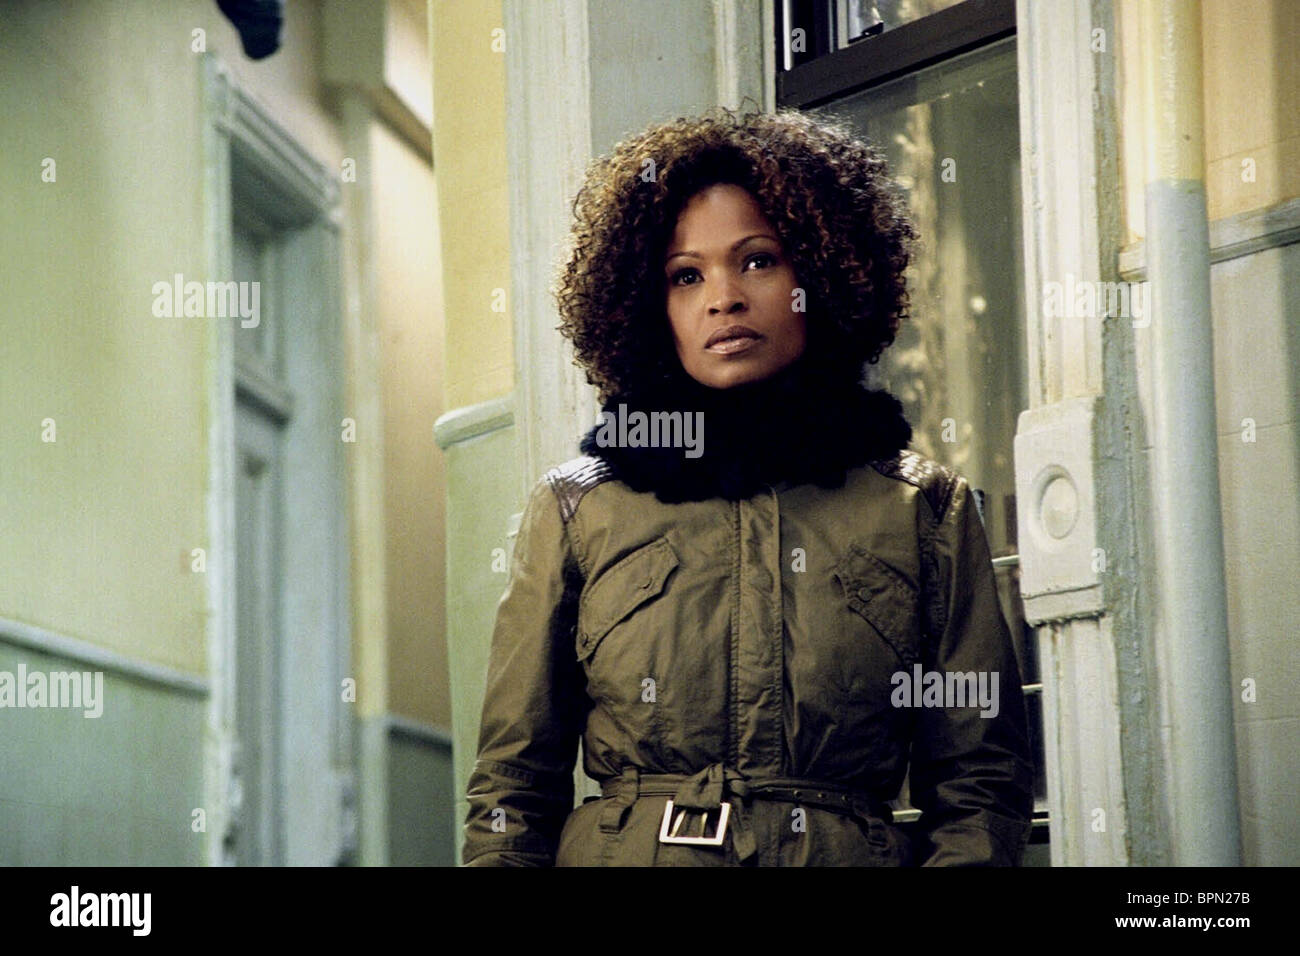 NIA LONG WHAT'S IT ALL ABOUT ALFIE? (2004) - Stock Image